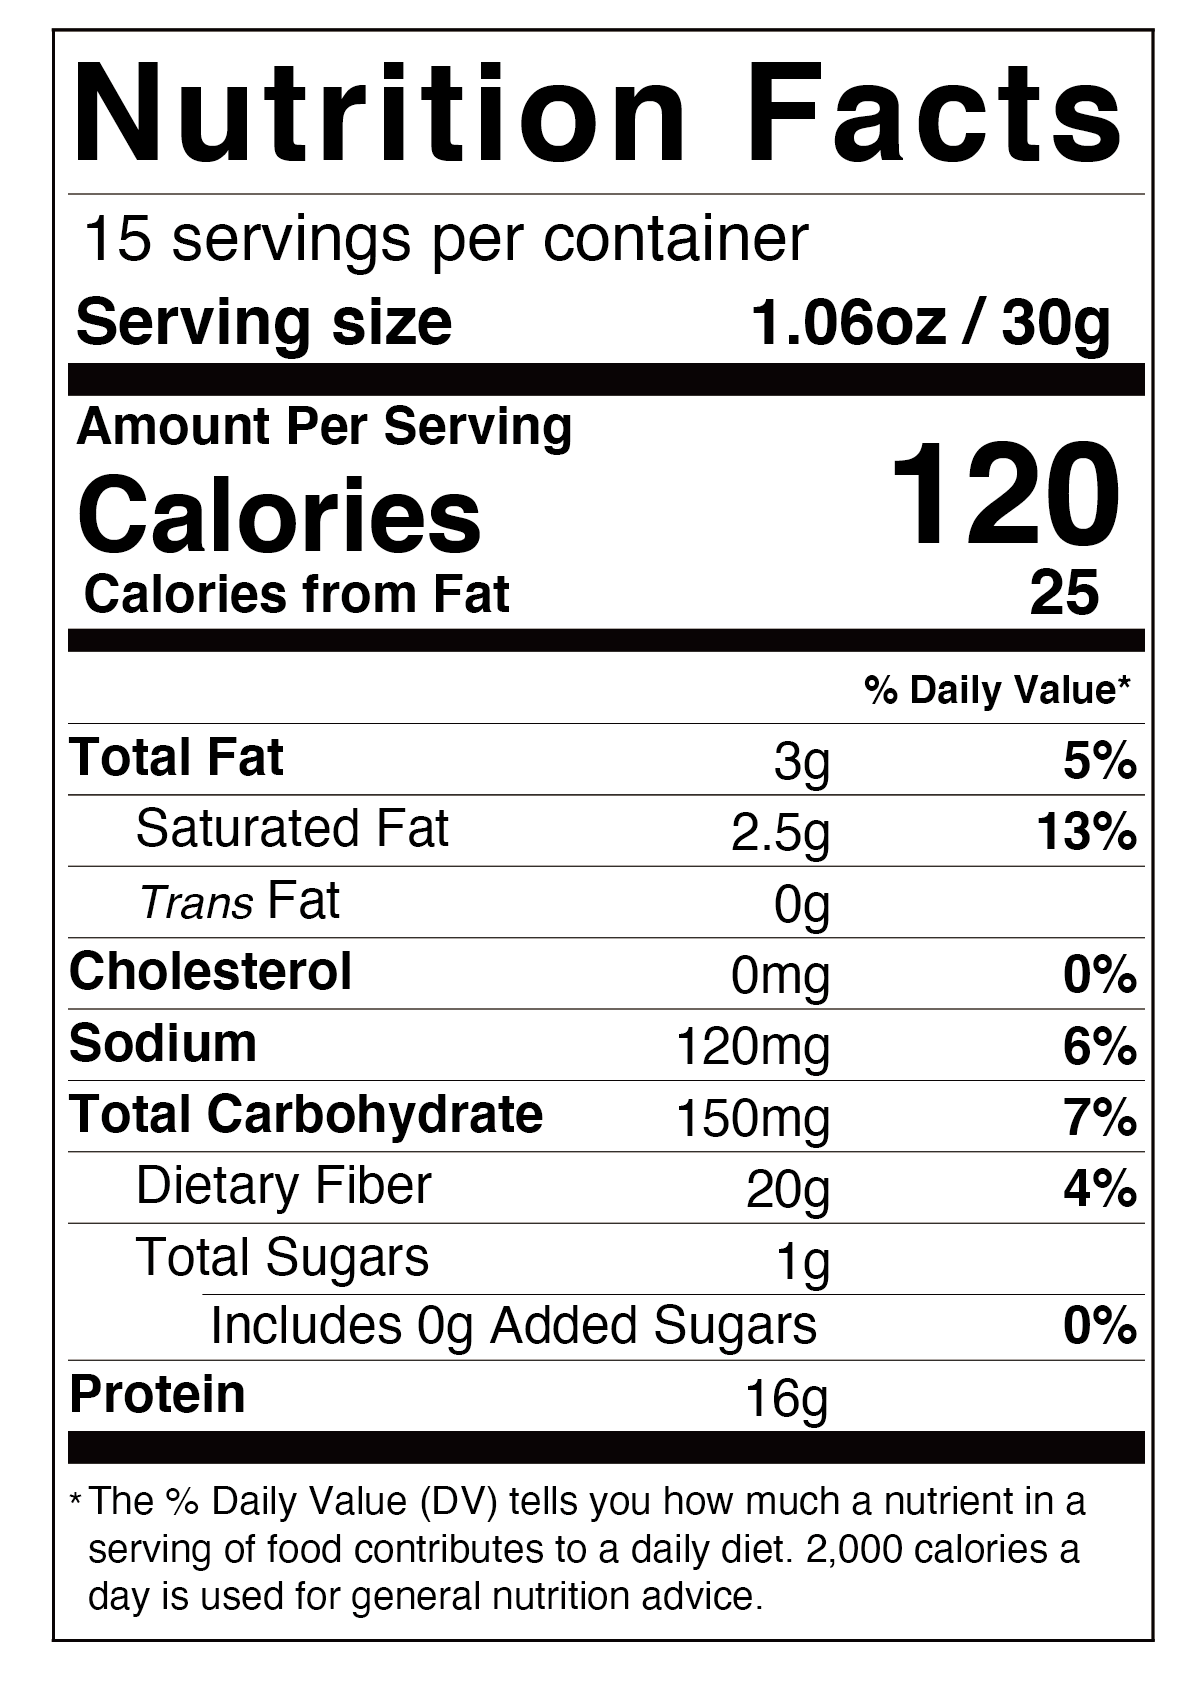 Divine Cereal nutrition facts